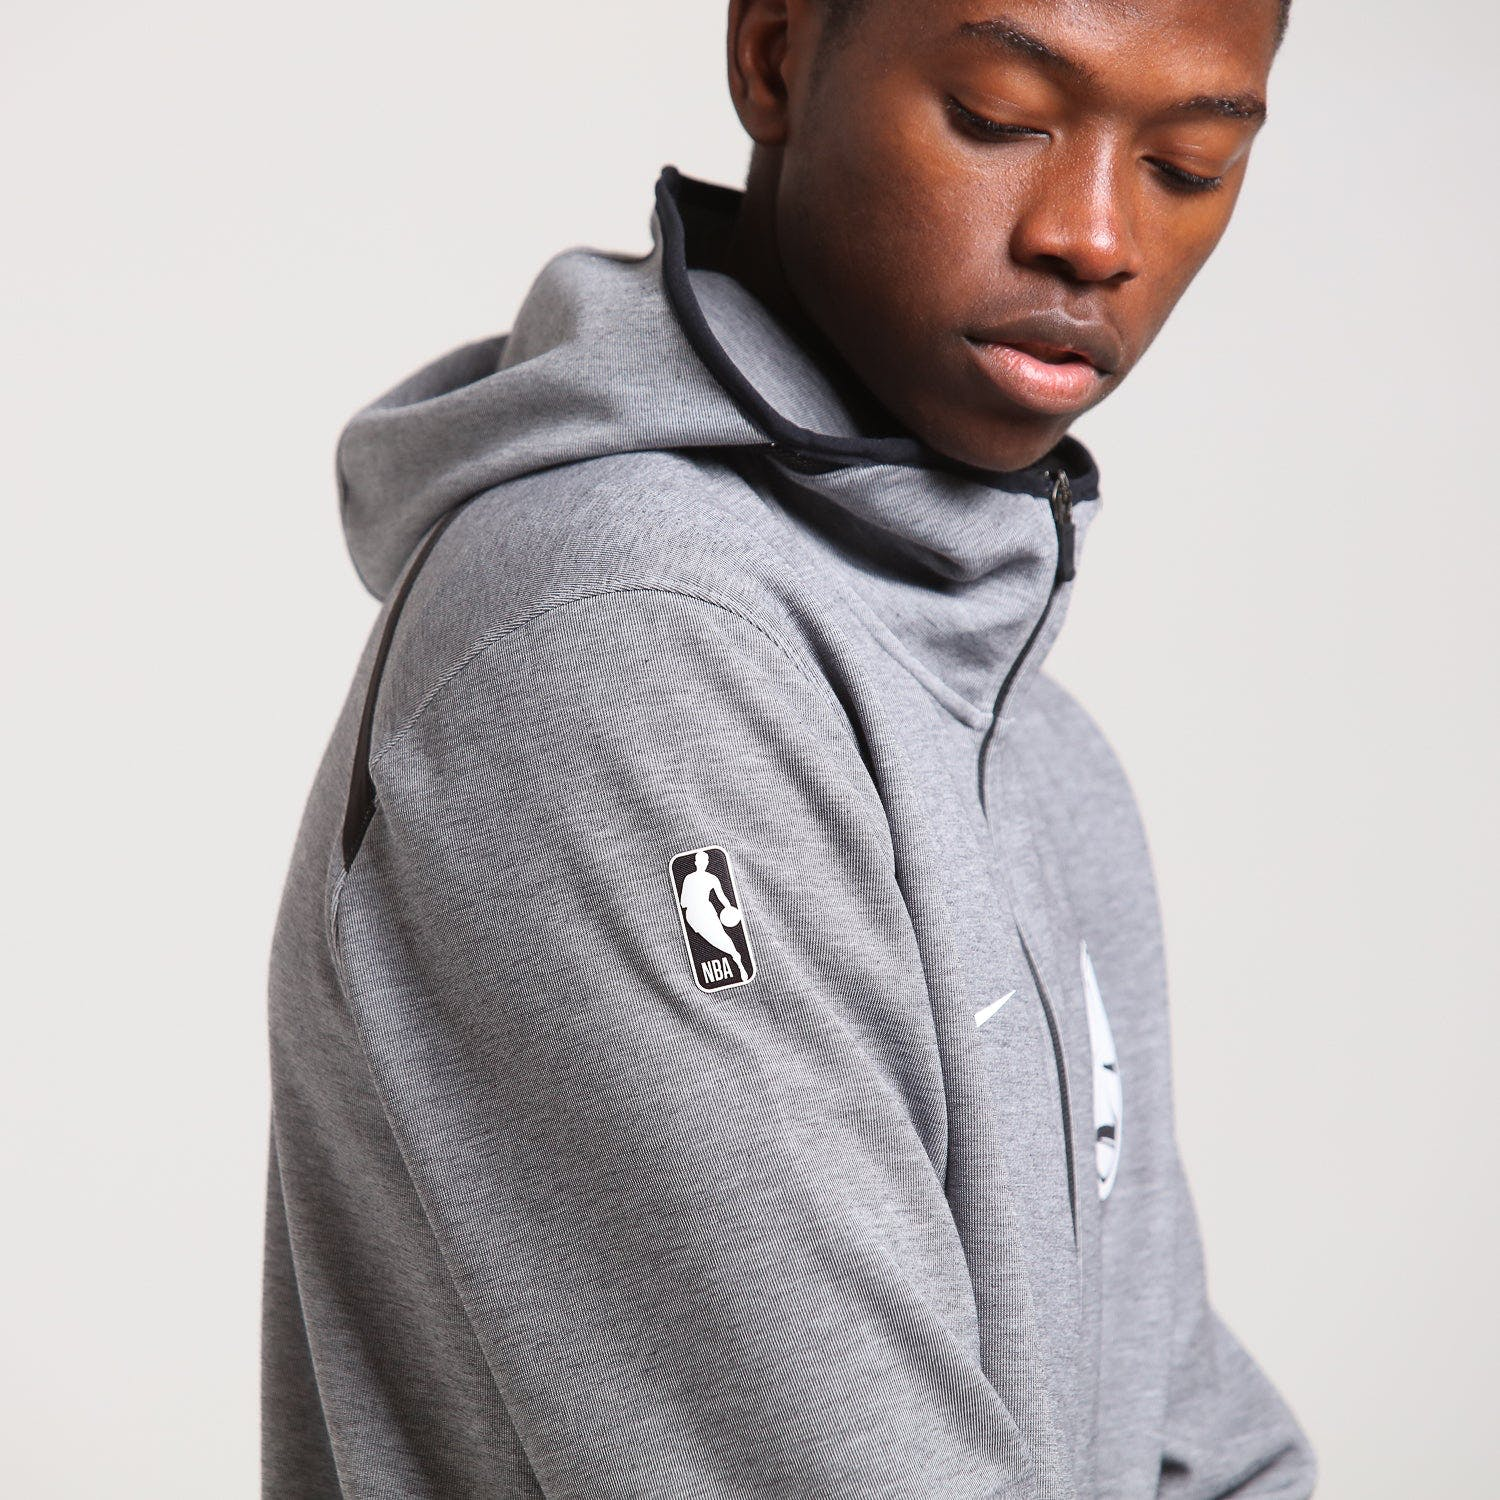 Nike Golden State Warriors Dry Showtime Hoodie Heather/Black/White | Culture Kings NZ